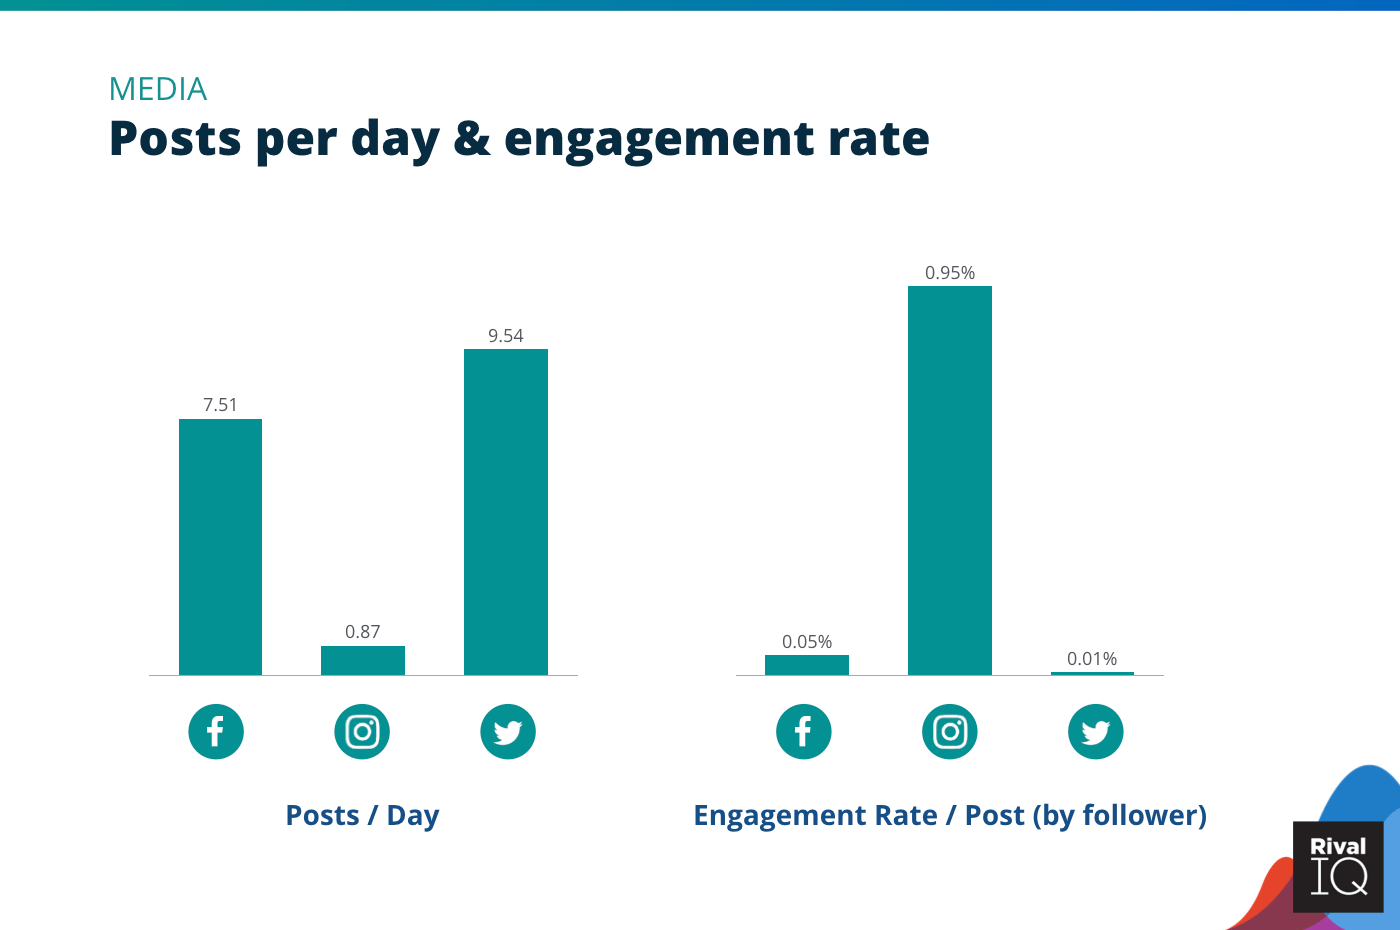 Chart of Posts per day and engagement rate per post across all channels, Media